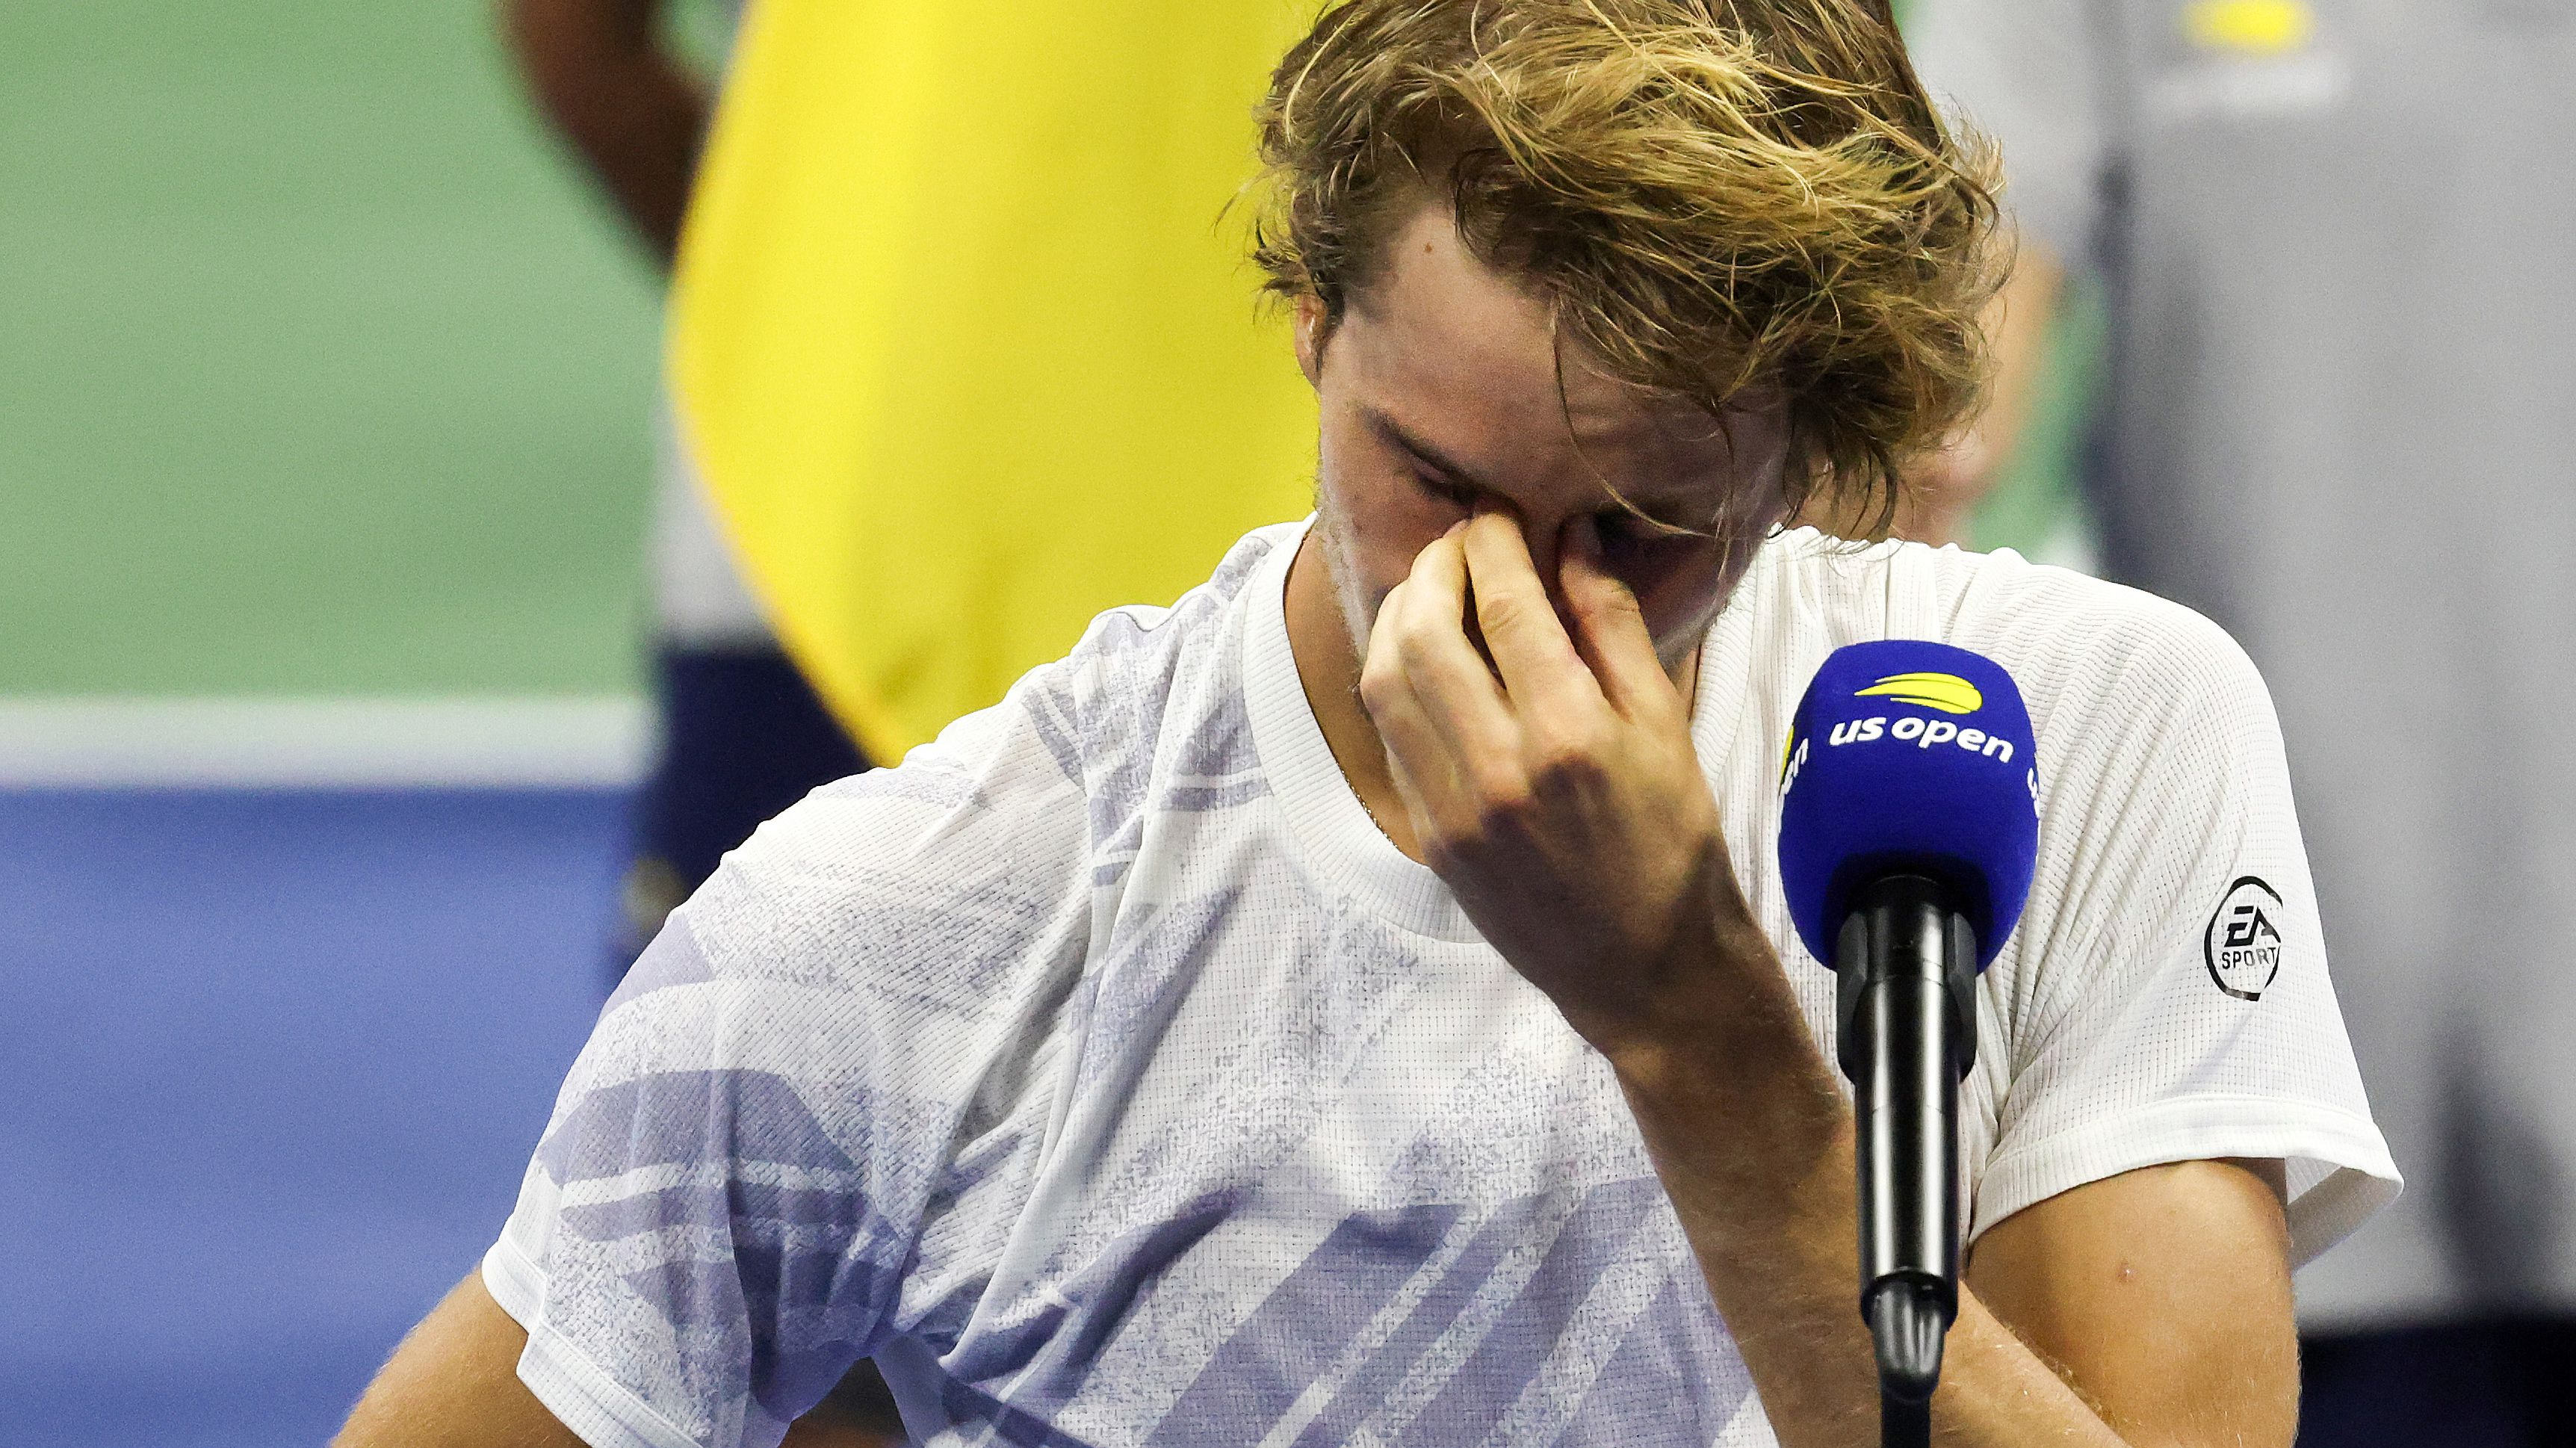 Alexander Zverev fights back tears during his US Open runners-up speech.